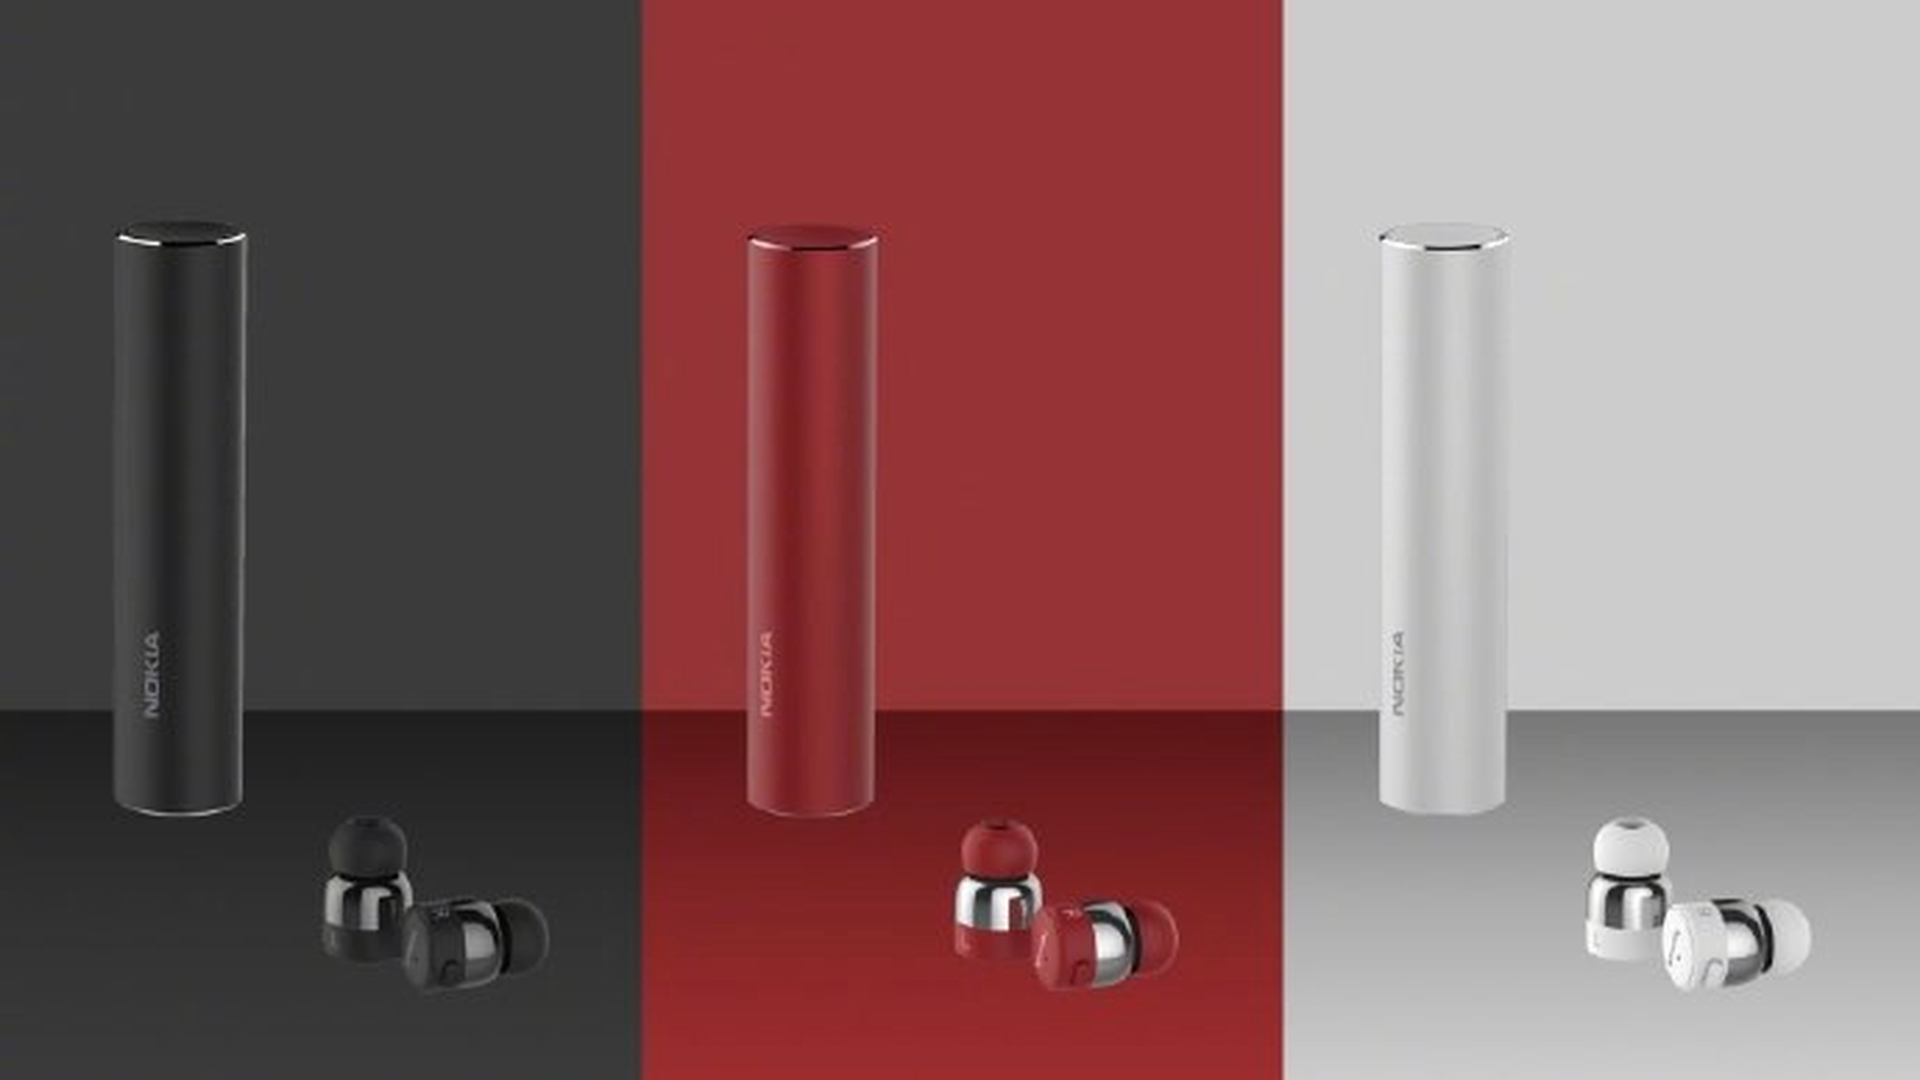 Наушники True Wireless Earbuds фото 2